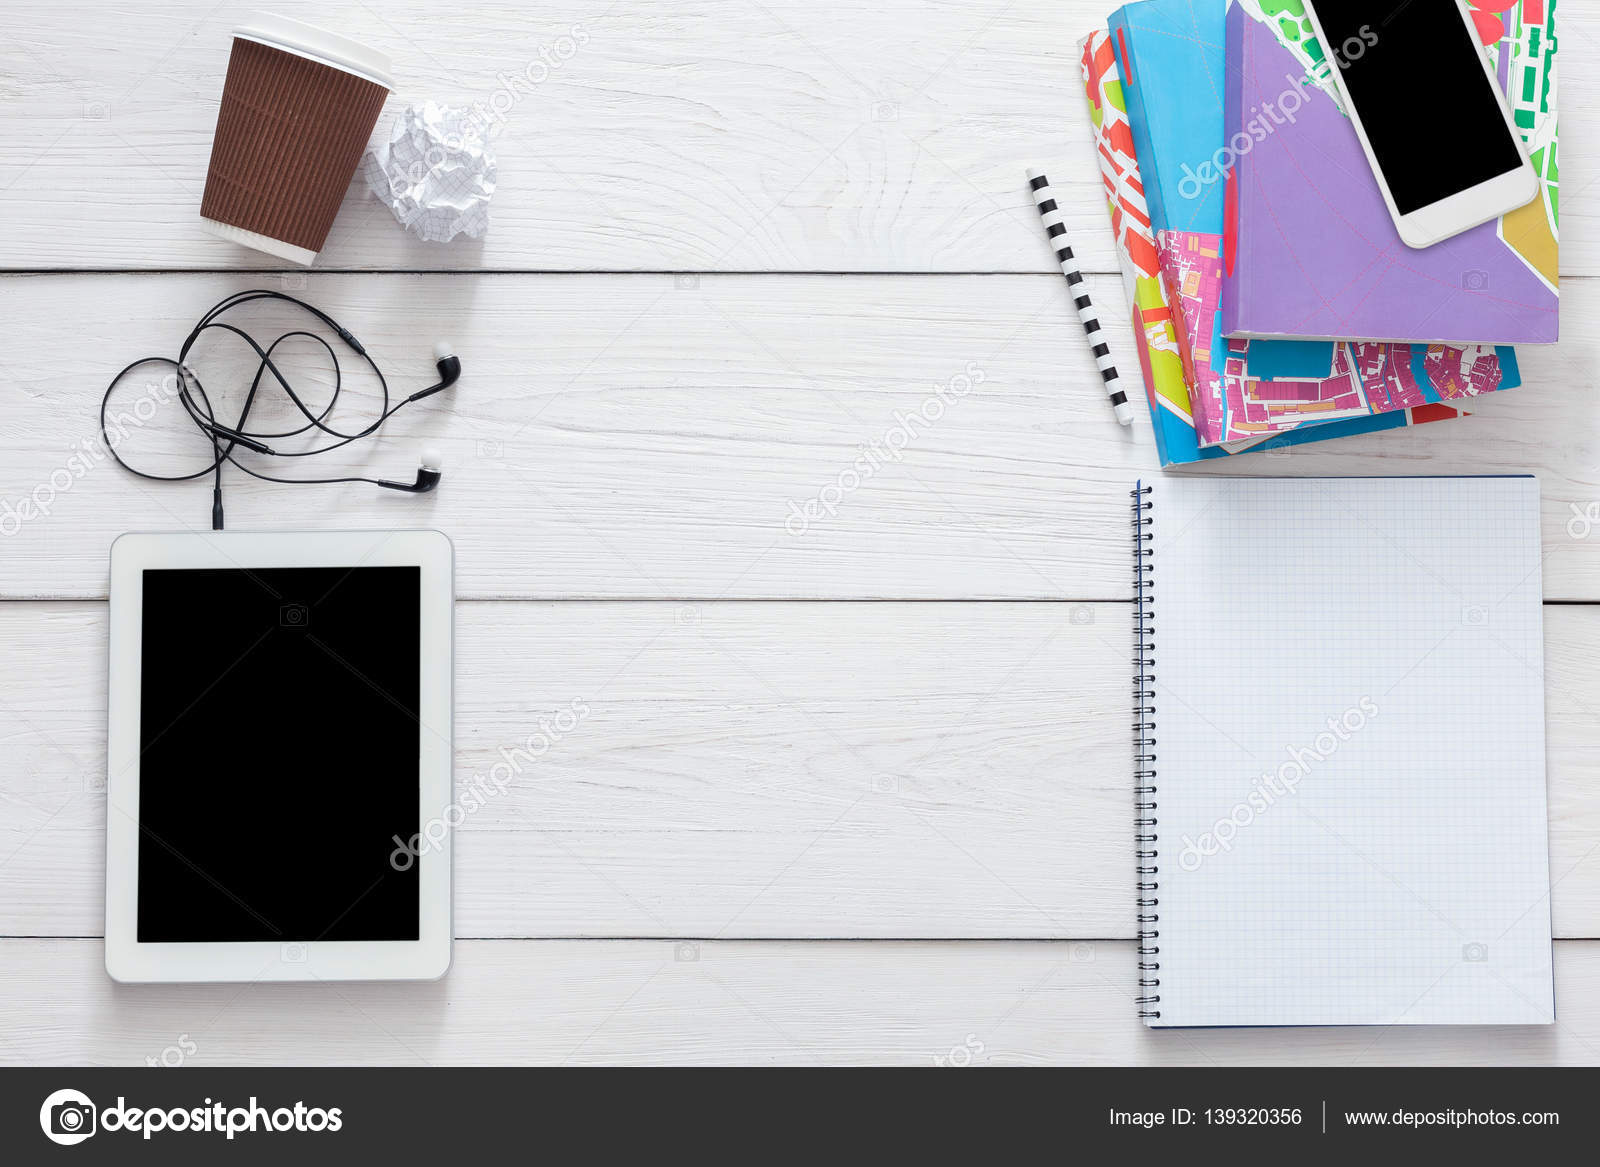 https://st3.depositphotos.com/4218696/13932/i/1600/depositphotos_139320356-stock-photo-student-table-with-tablet-and.jpg